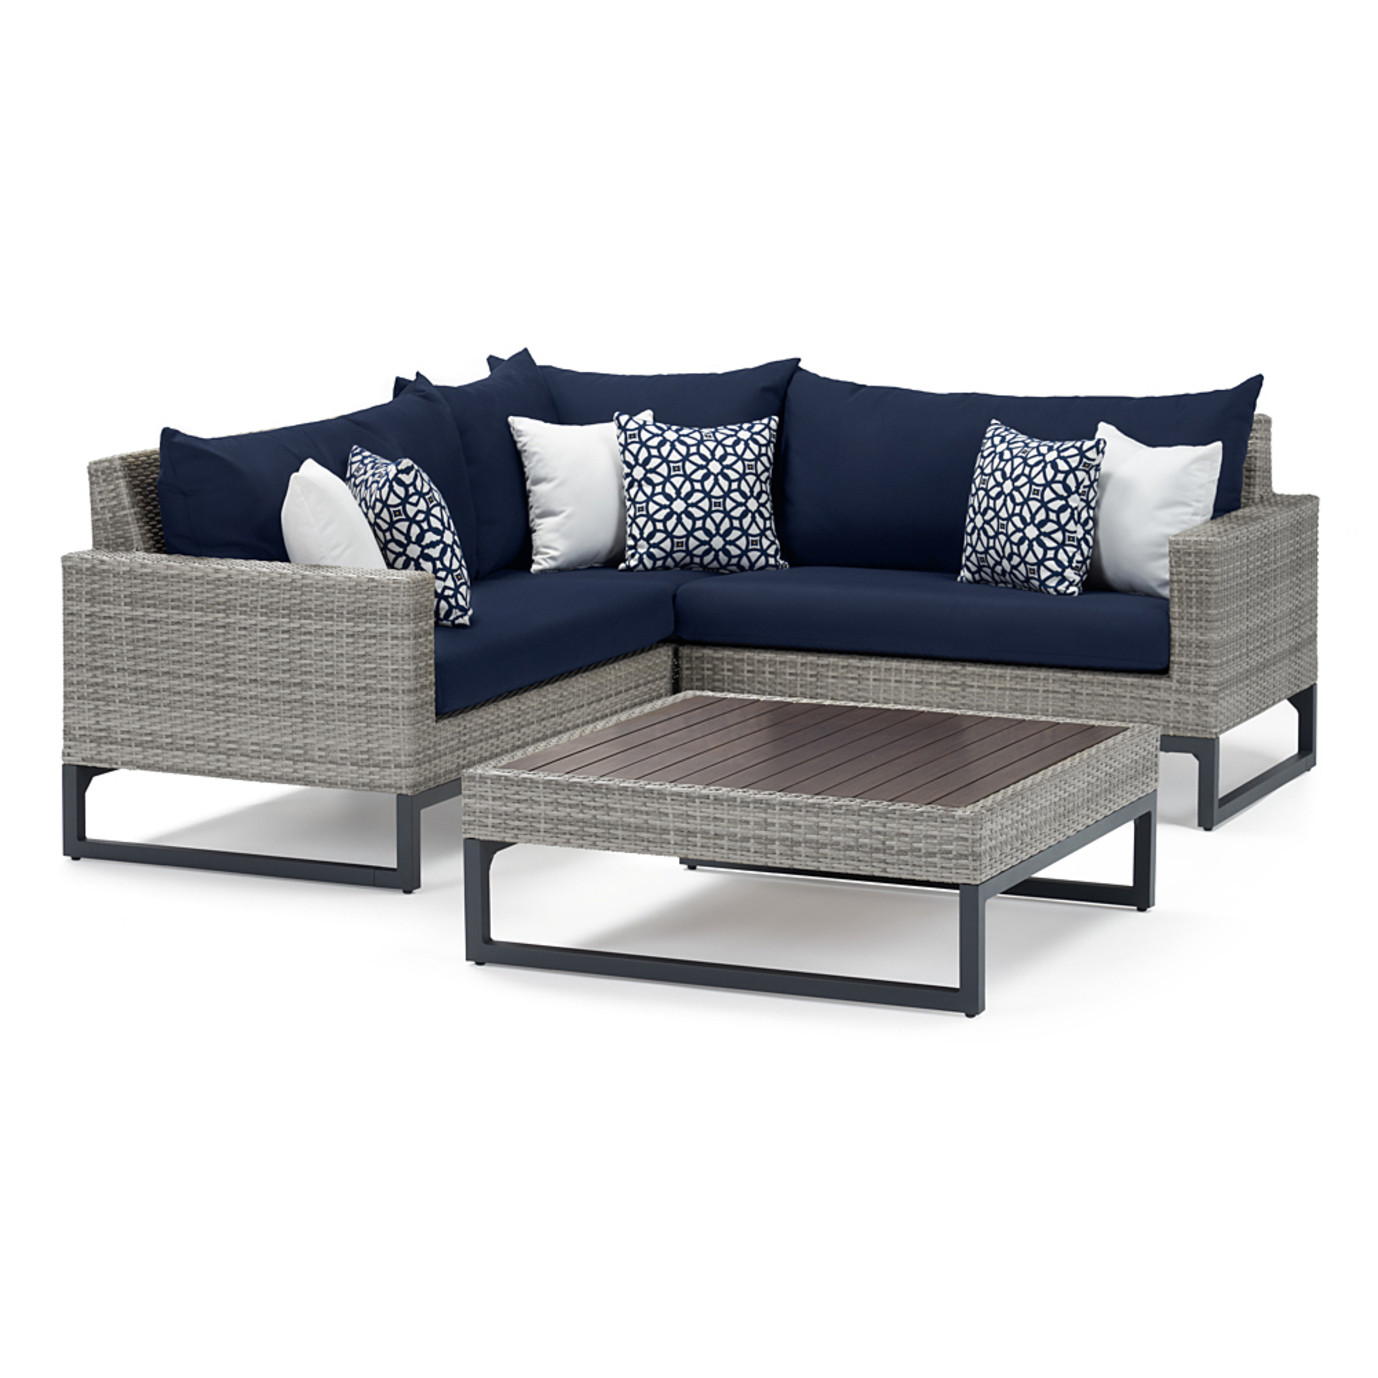 Milo Gray 4 Piece Sectional - Navy Blue